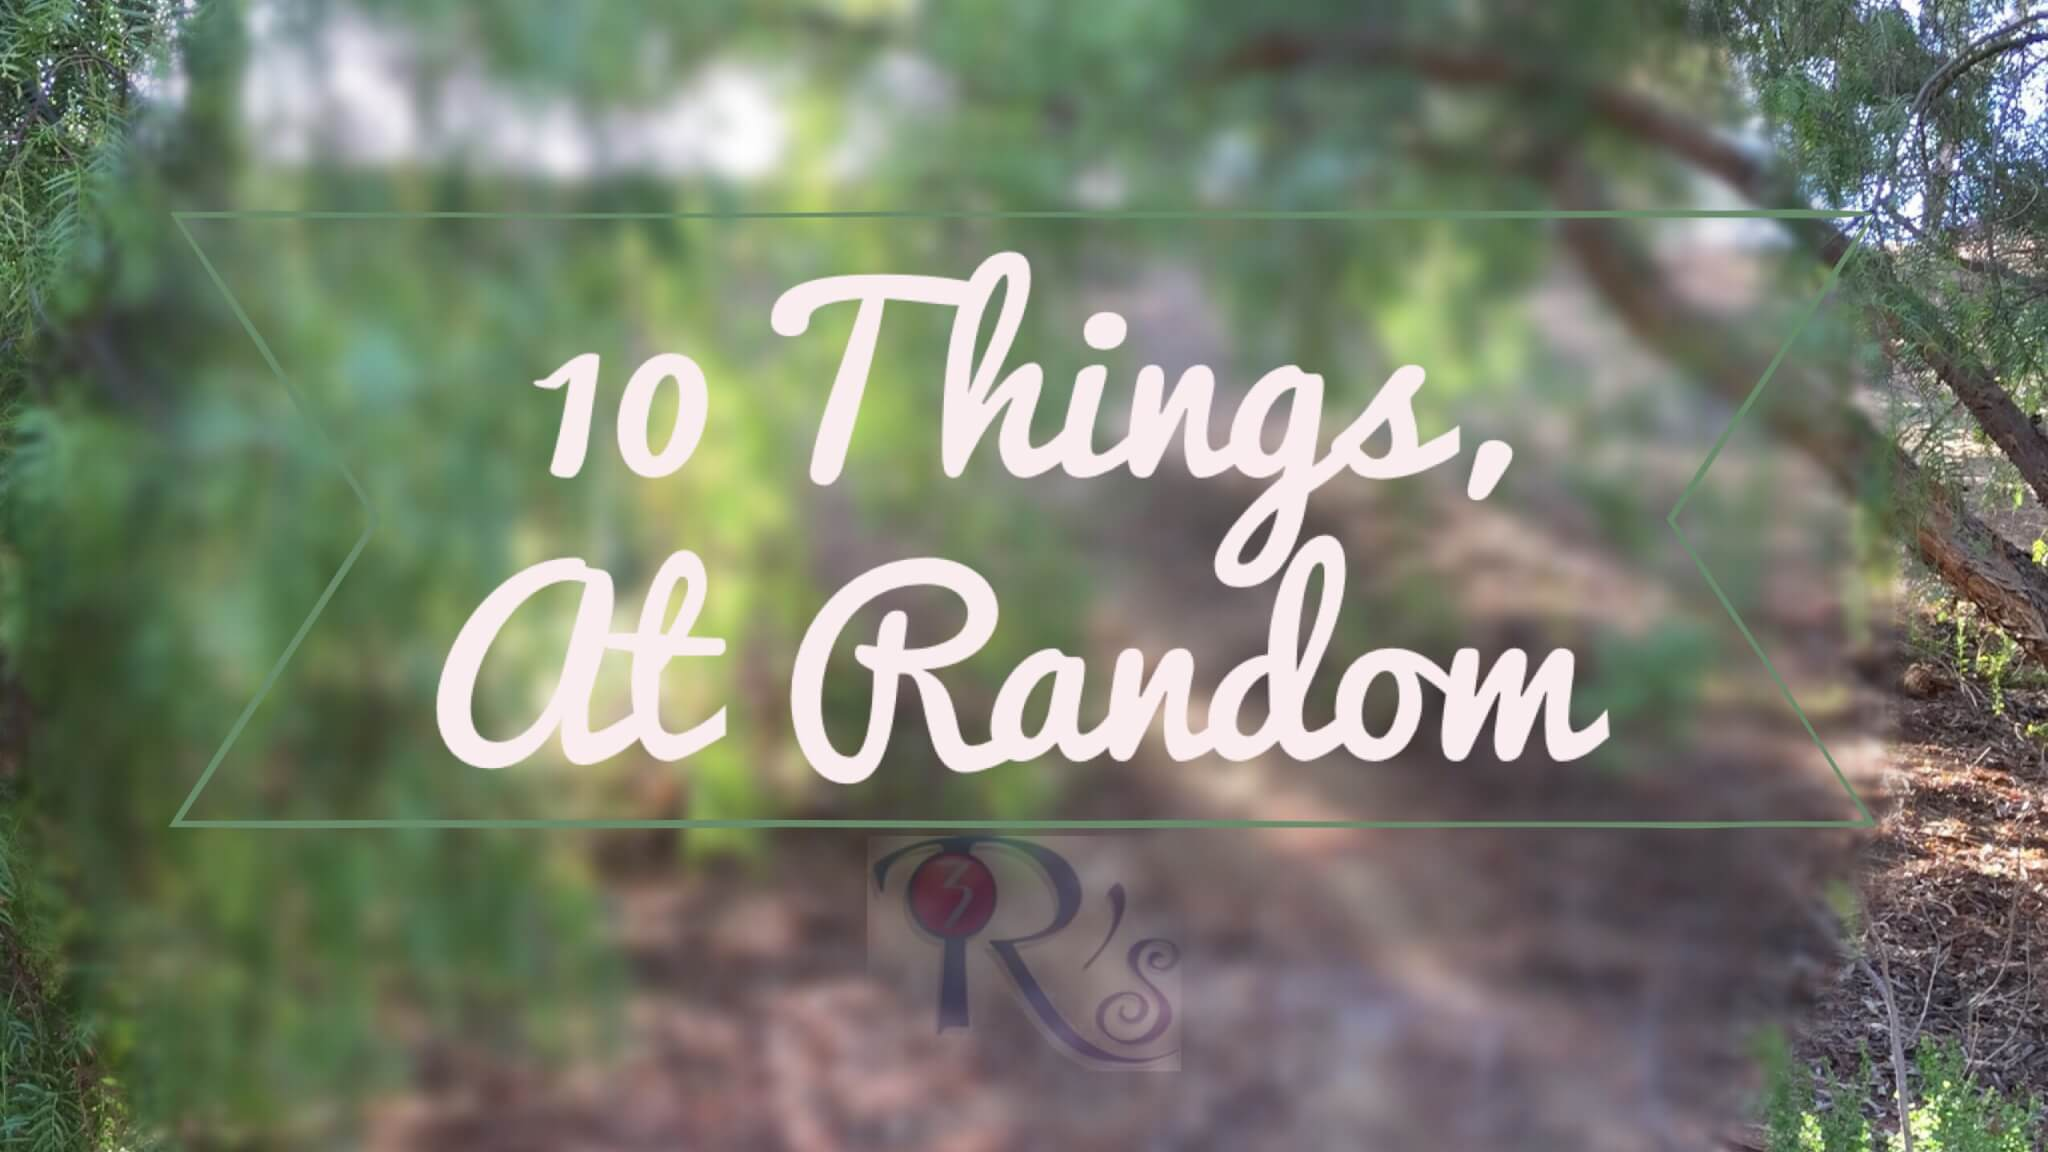 10 things at random